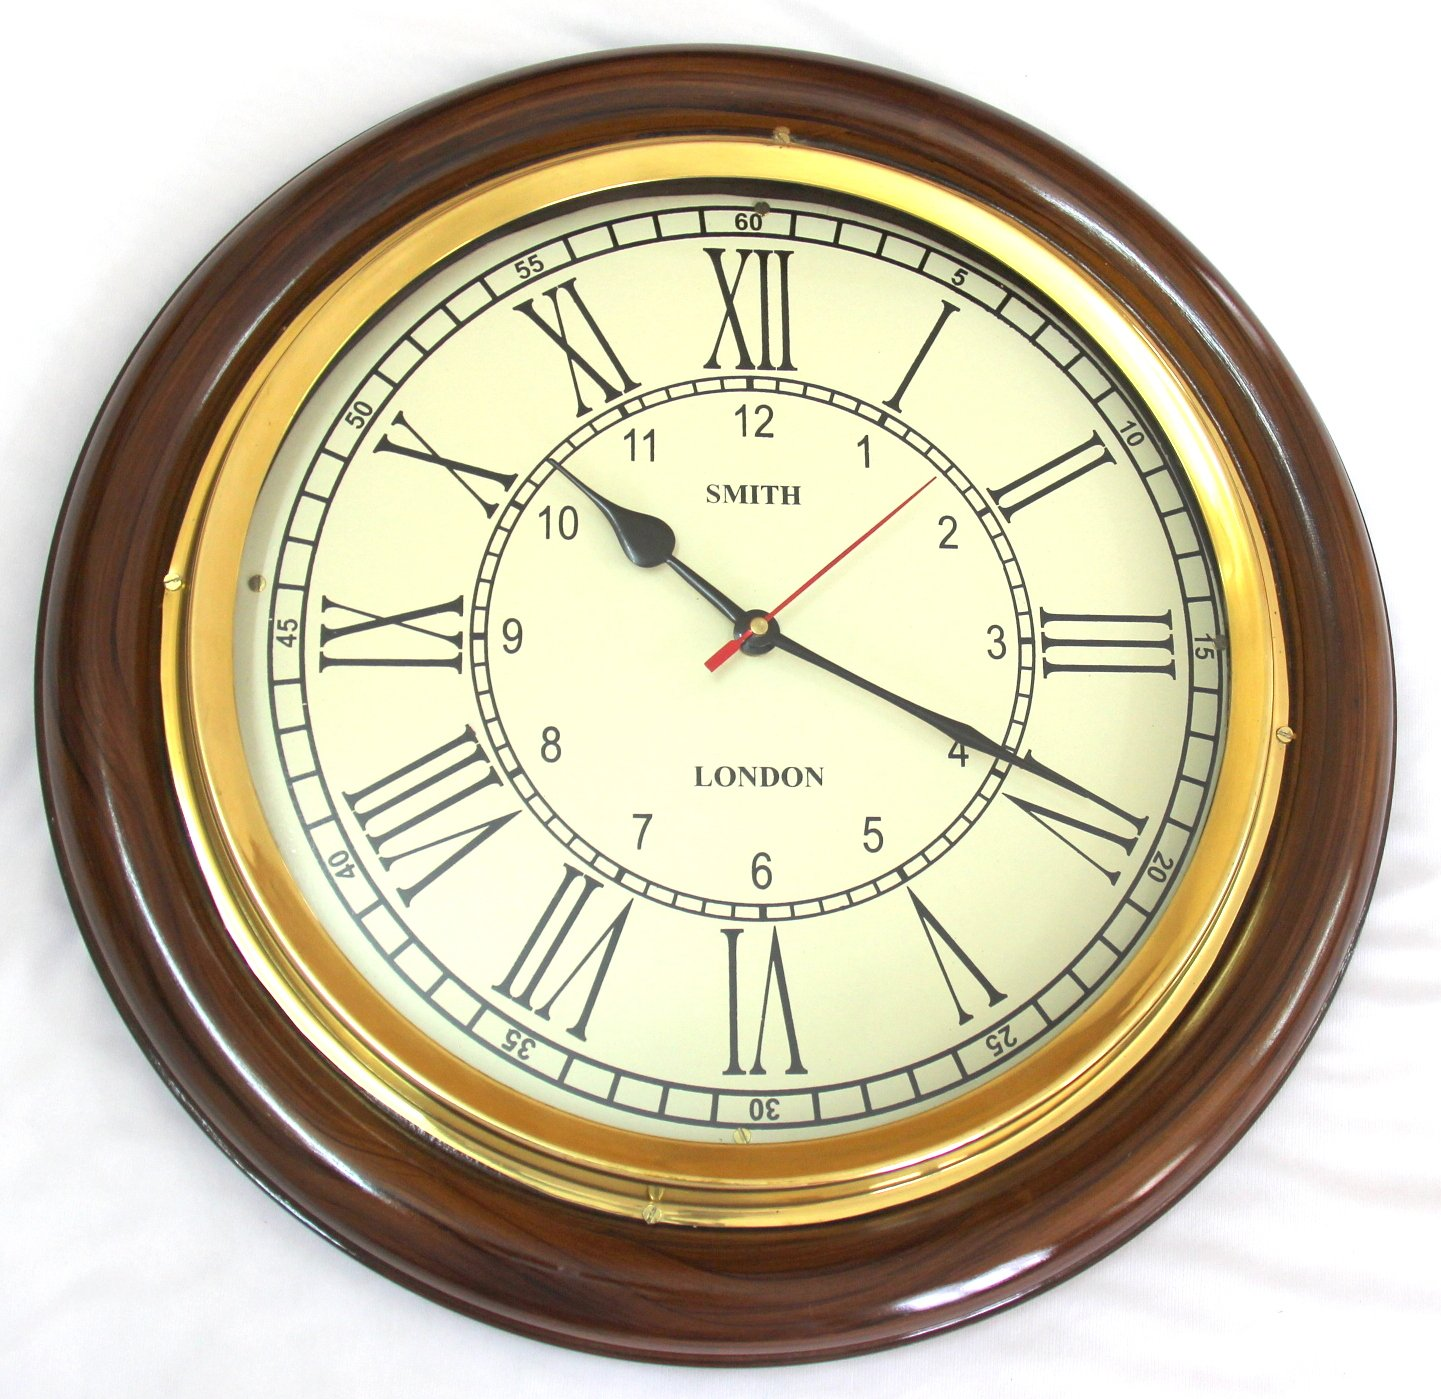 Buy artshai 16 inch big wall clock for living room and office buy artshai 16 inch big wall clock for living room and office antique look brass and wooden roman numbering online at low prices in india amazon amipublicfo Gallery